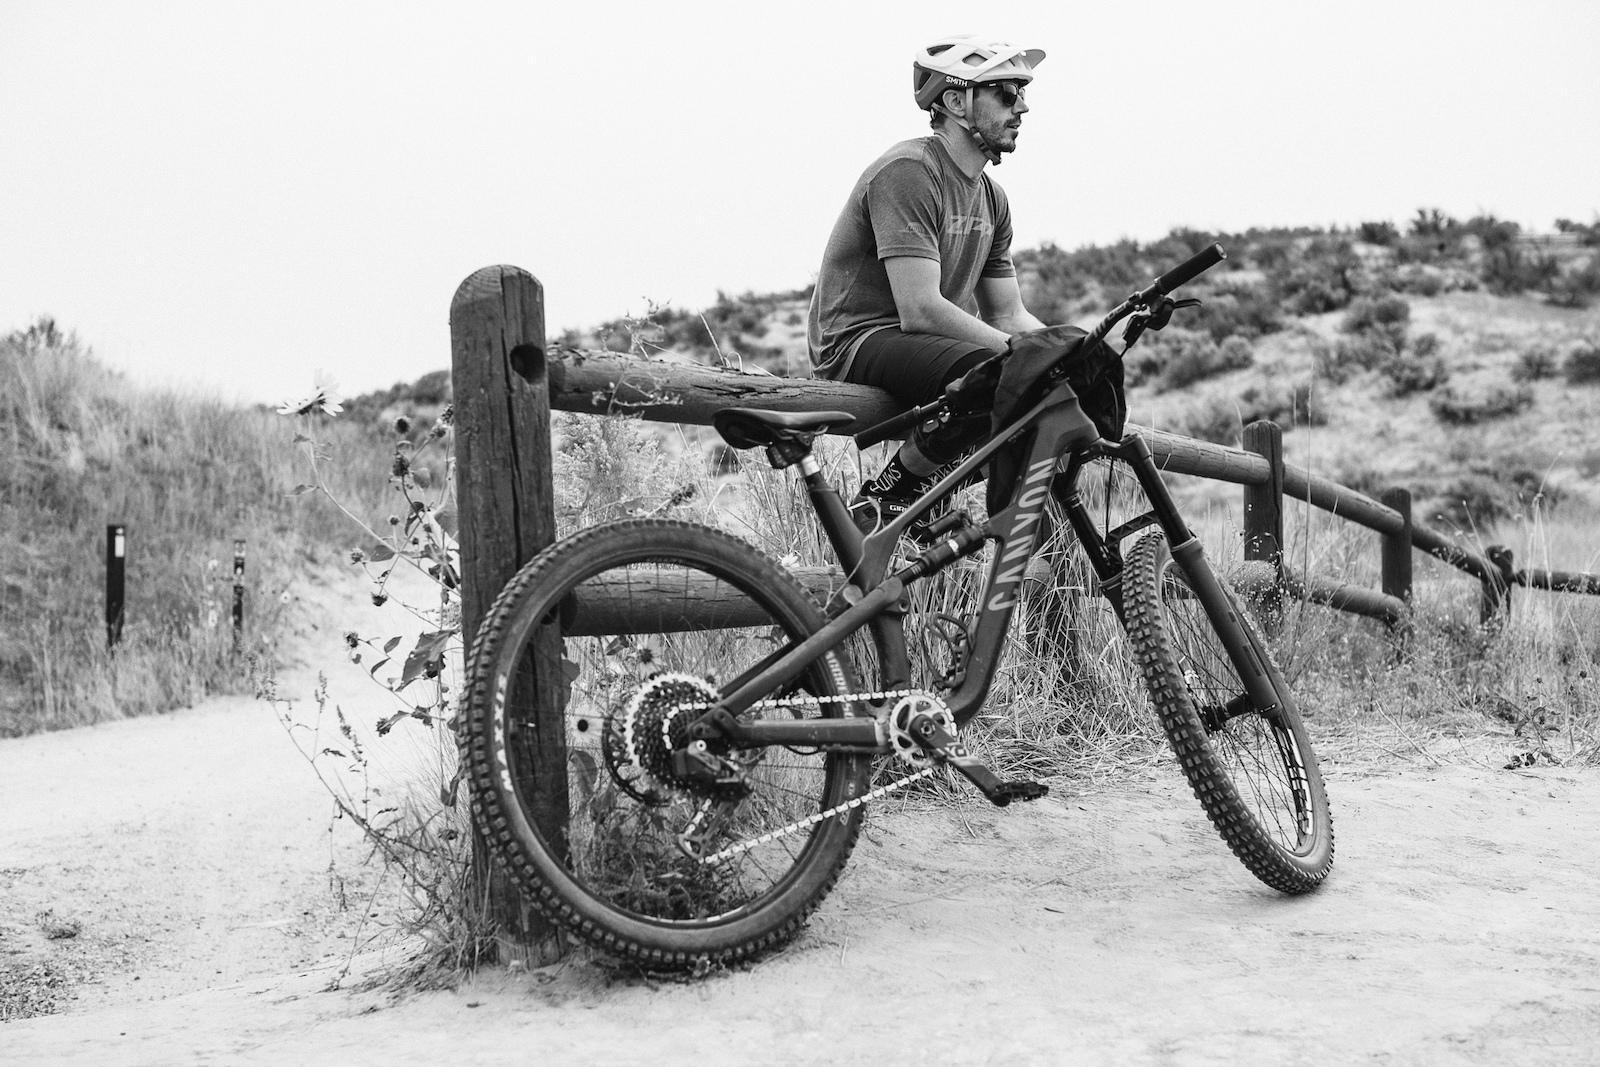 For former BMX racer Braydon Bringhurst the Eagle Bike Park is the perfect training ground to hone the unique style he s brought to mountian biking.